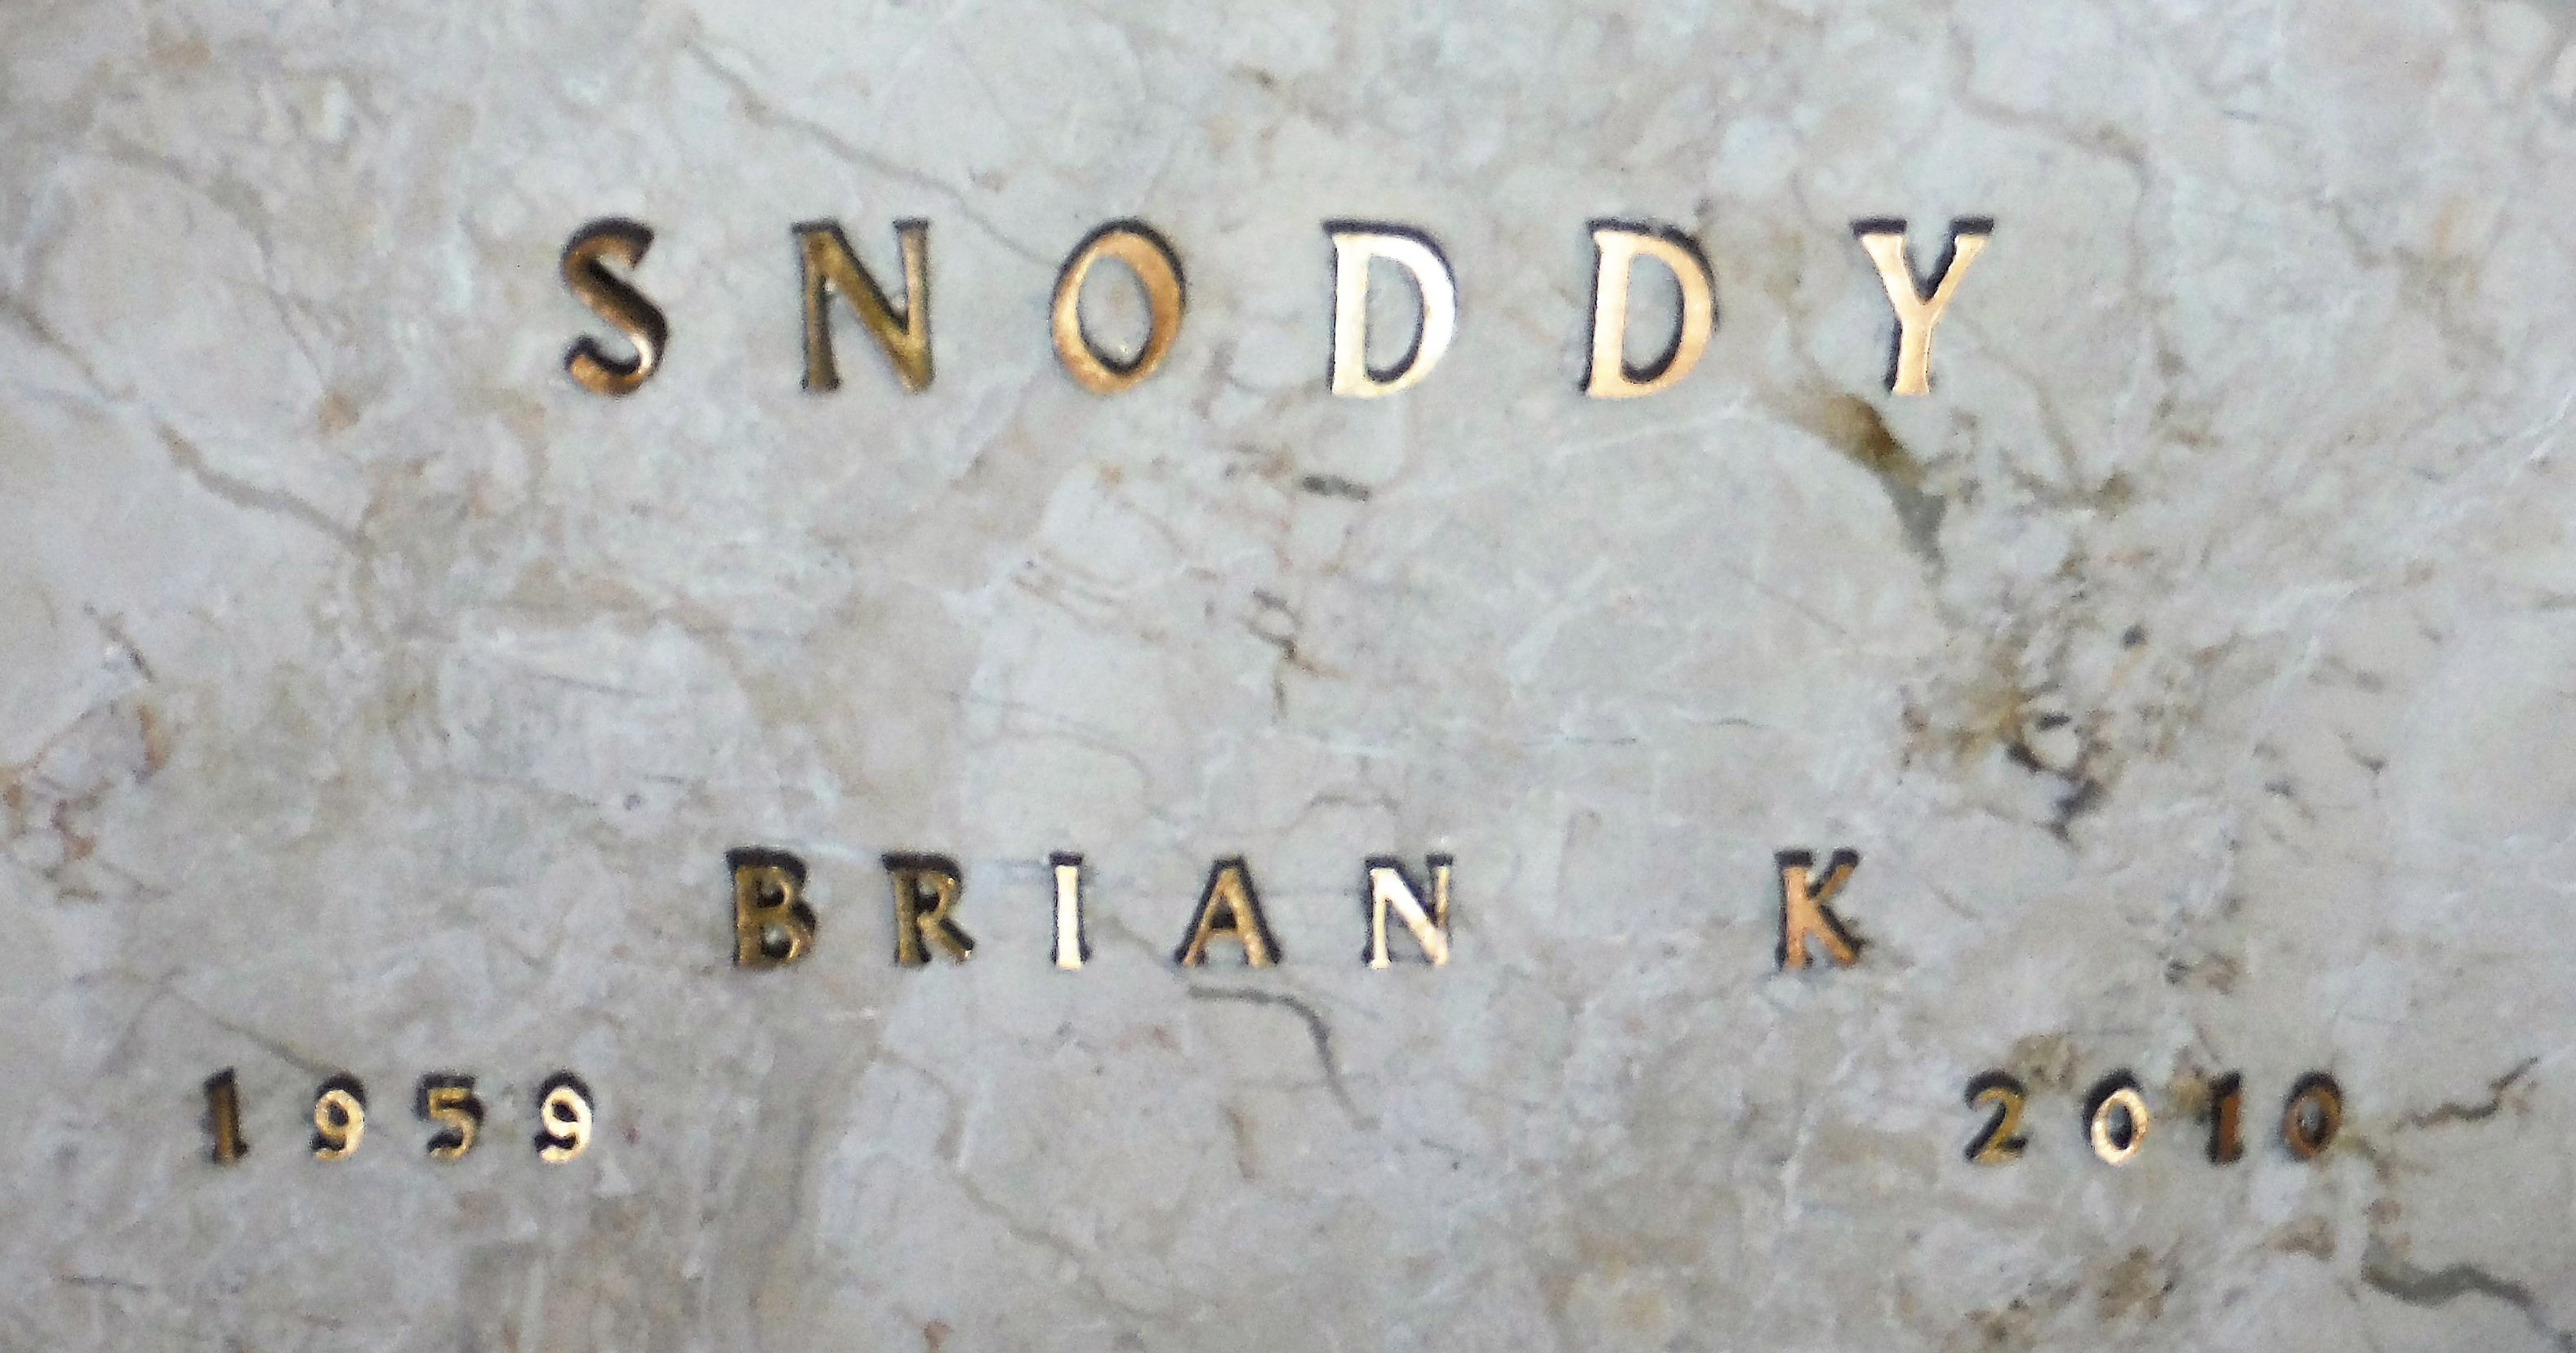 Brian k snoddy 1959 2010 find a grave memorial view original aiddatafo Choice Image